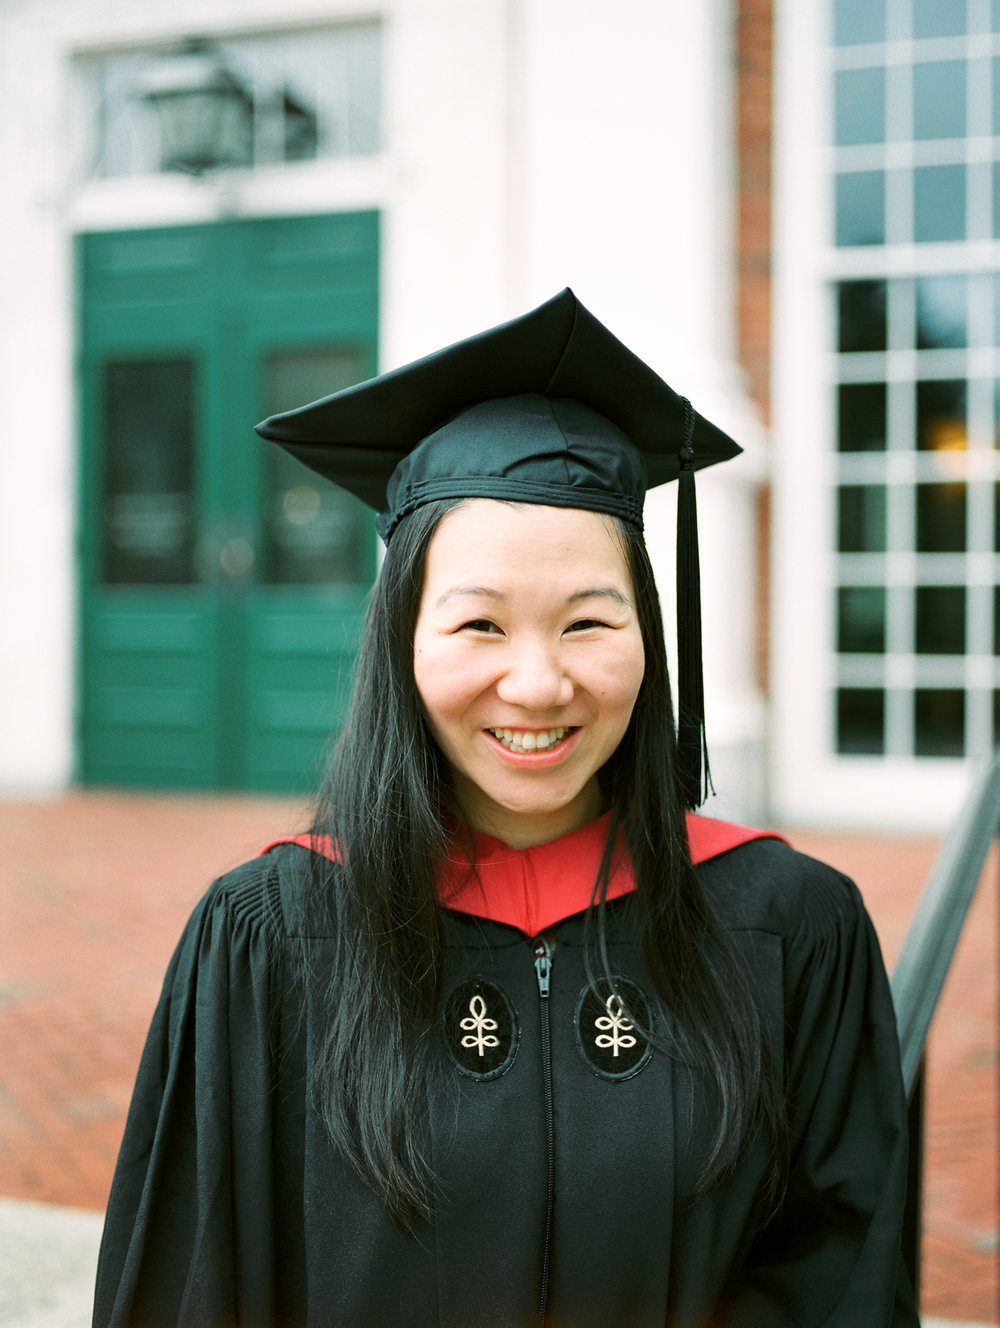 Boston Harvard Graduation Session-70802JBzhu605003-R3-043-2.jpg